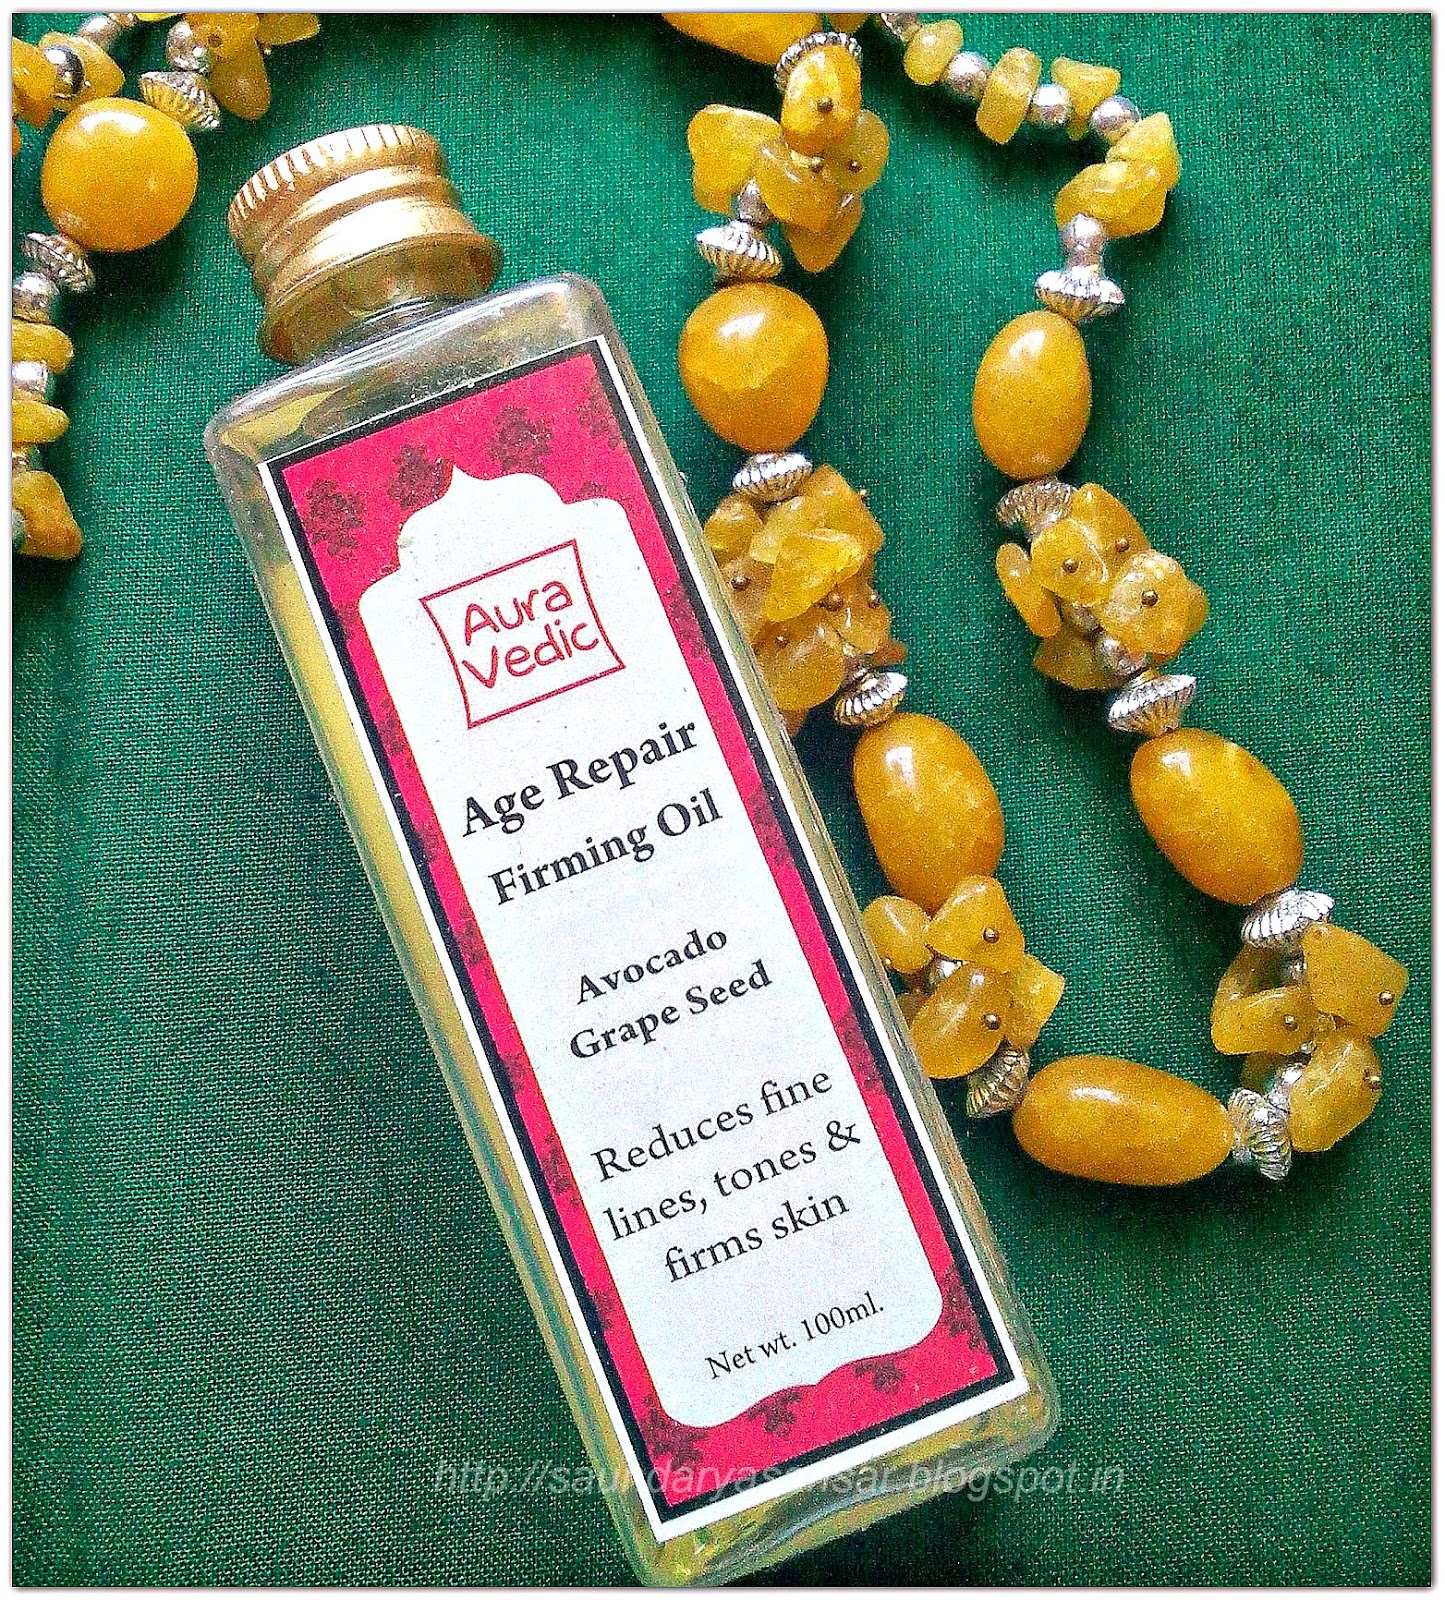 Aura Vedic Age Repair Firming Oil-Review